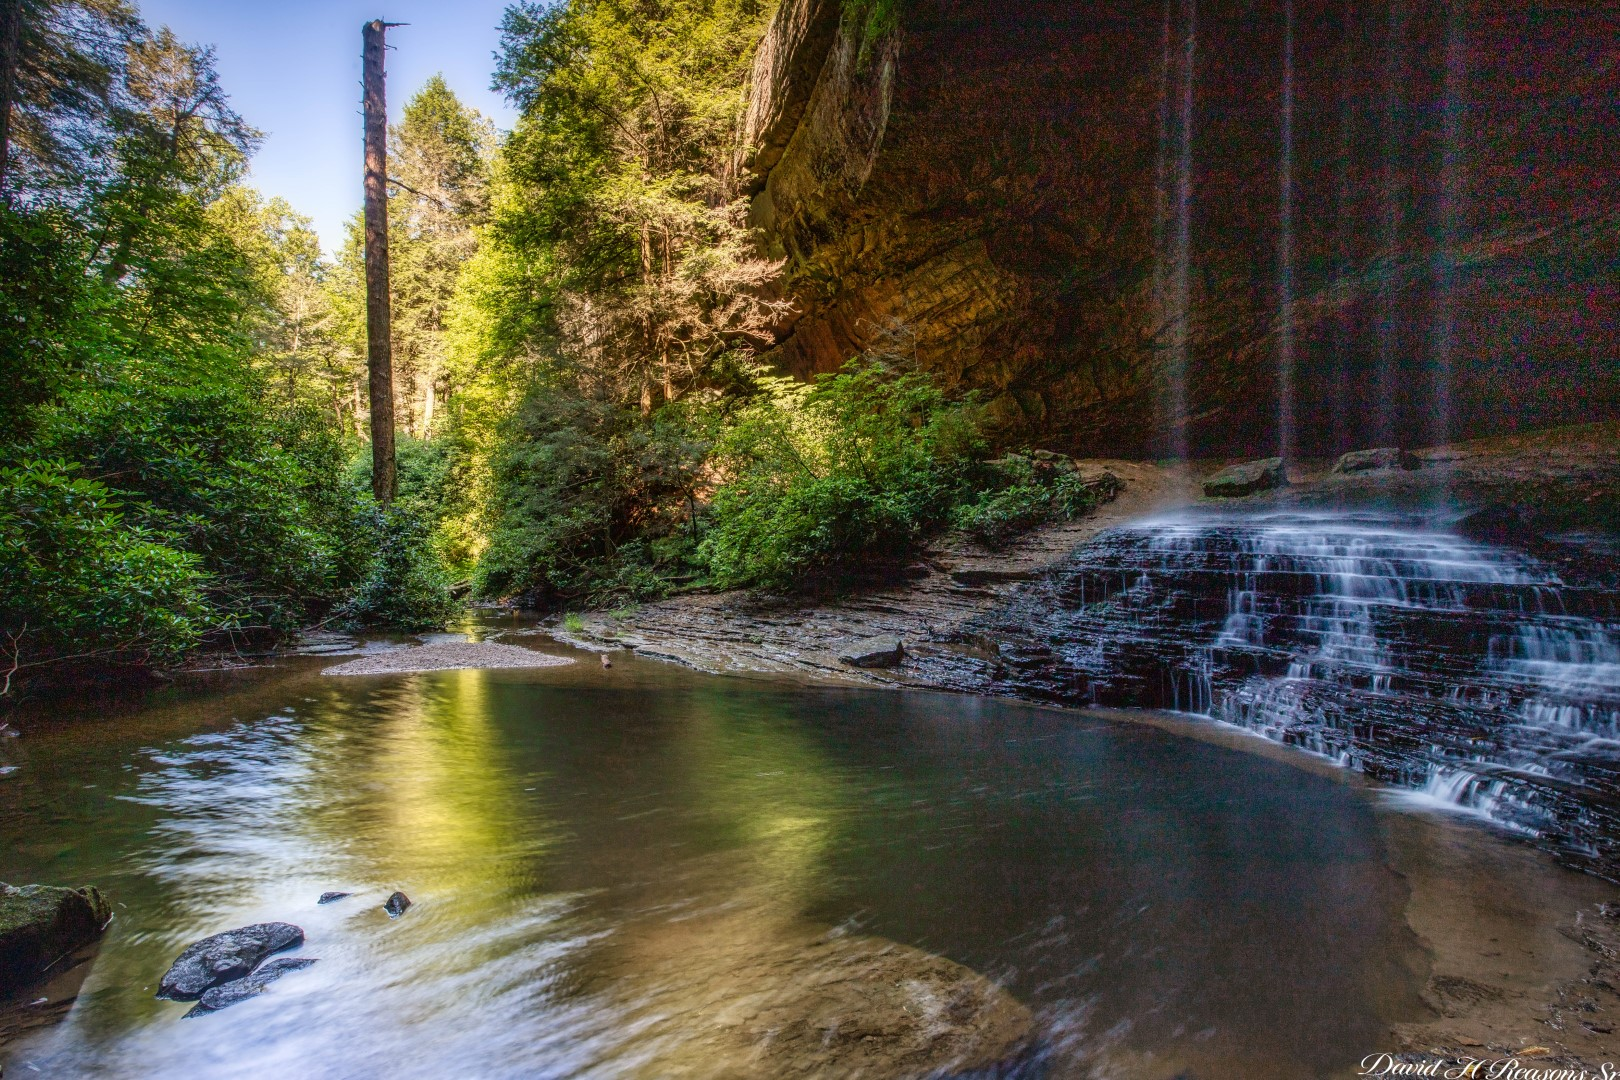 Looking down stream from the falls.  Colditz Cove State Natural Area